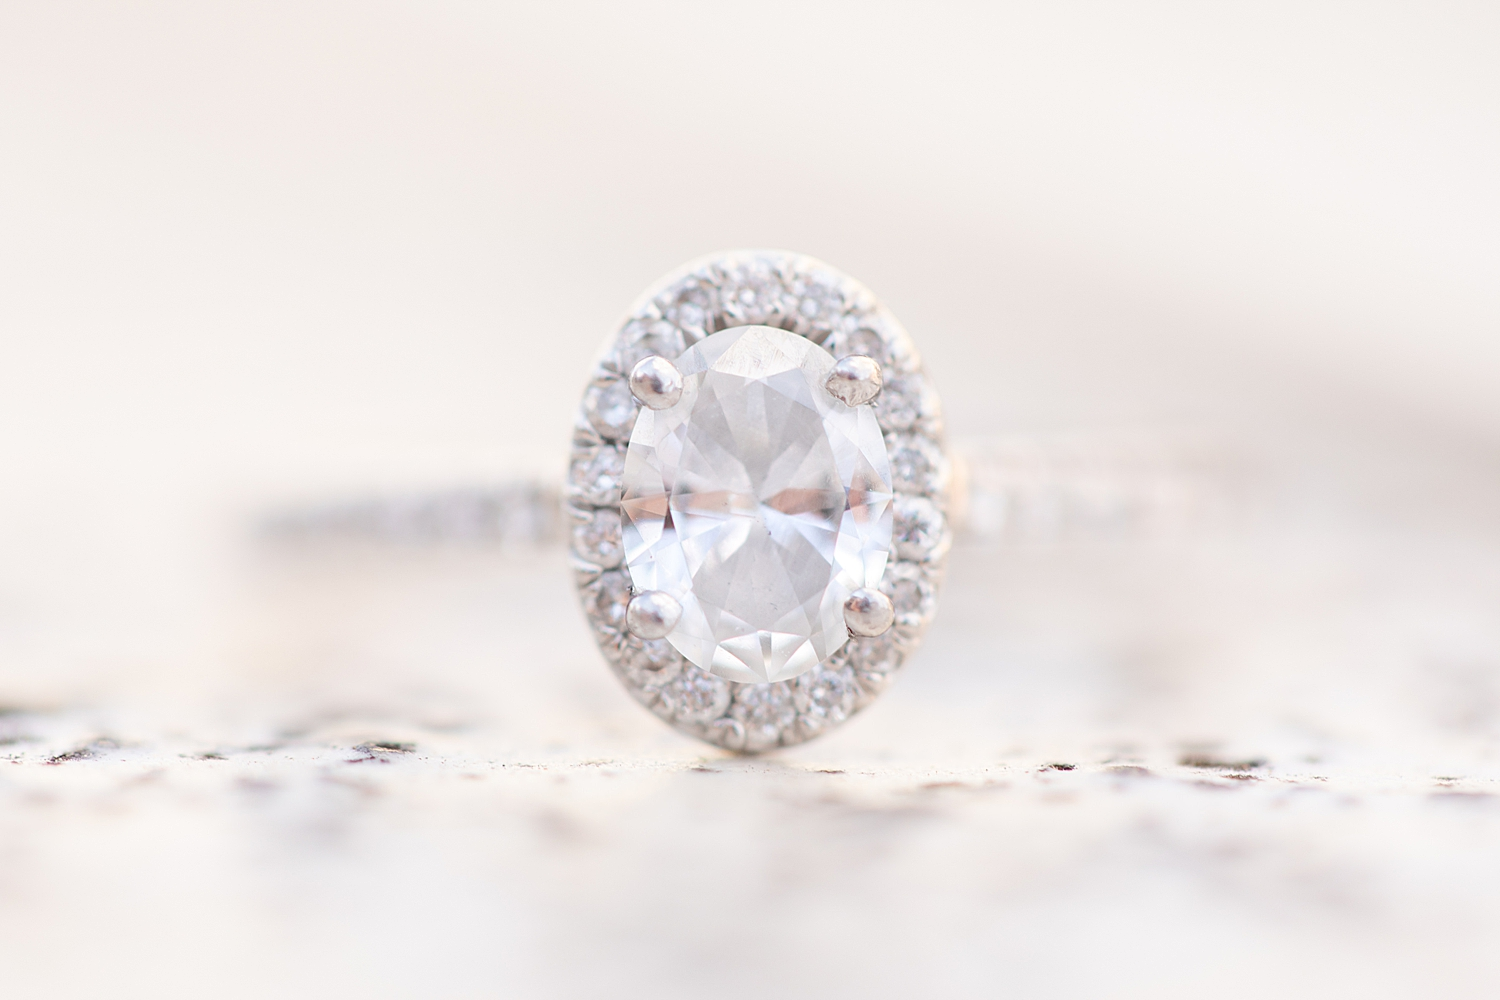 LOVE this oval ring! Whoa!